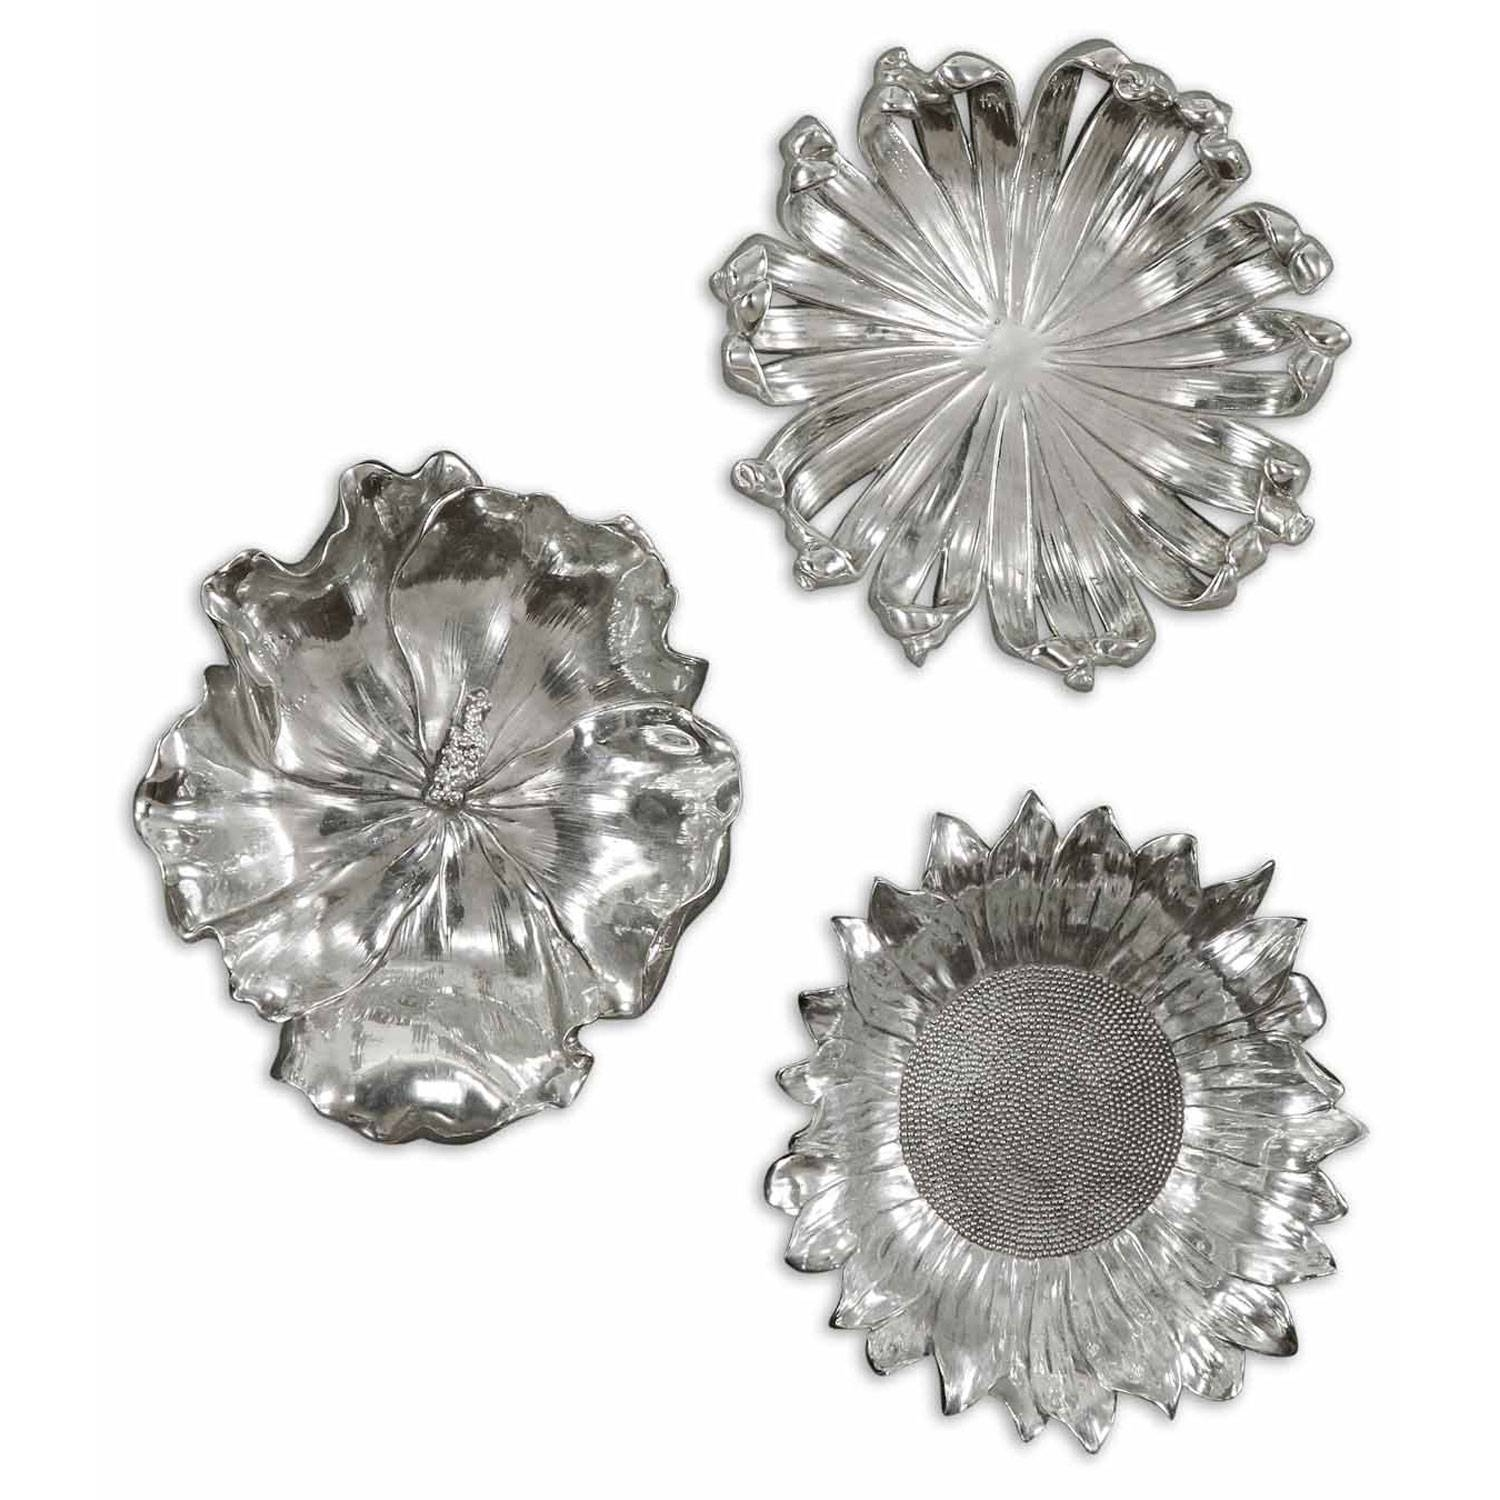 Silver Flowers Metal Wall Art, Set Of Three Uttermost Wall With Regard To Most Recently Released Metal Wall Art Flowers (View 15 of 20)